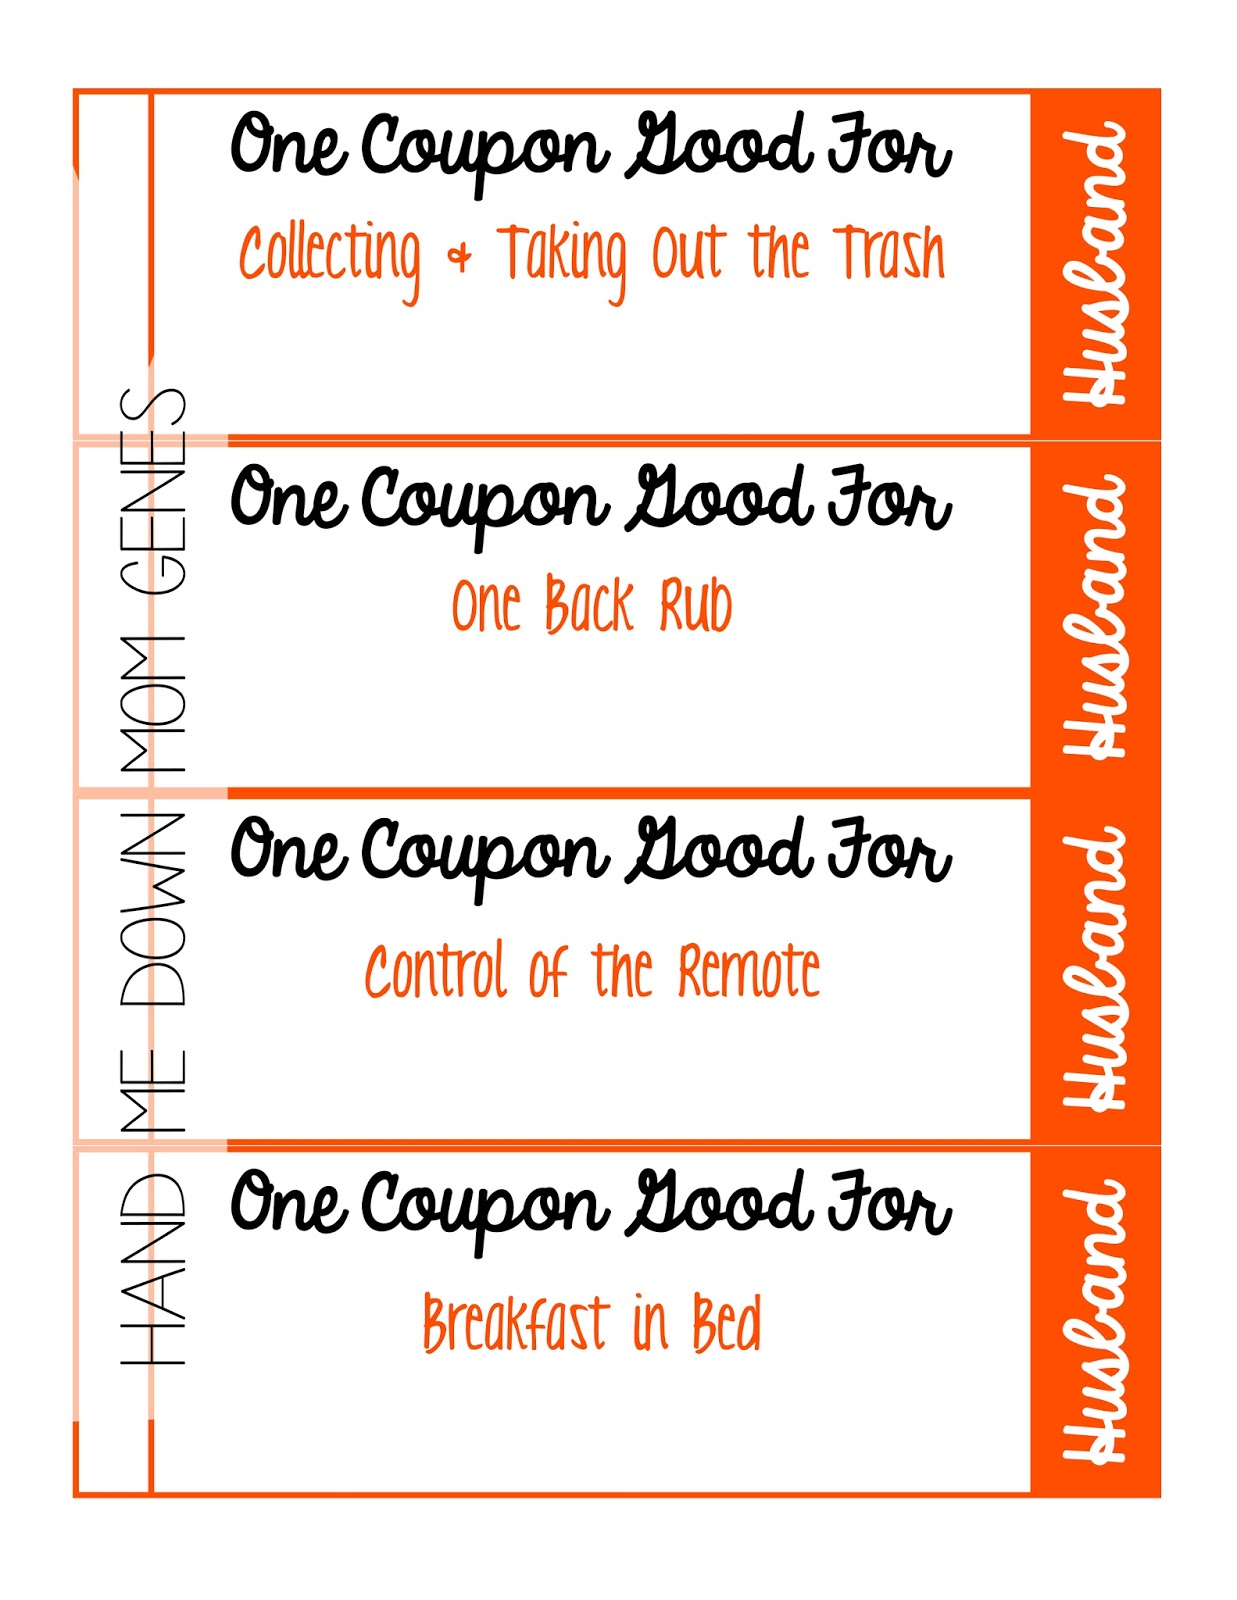 Select An Image And Text To Print Out For A Custom Coupon Book.  Free Coupon Book Template